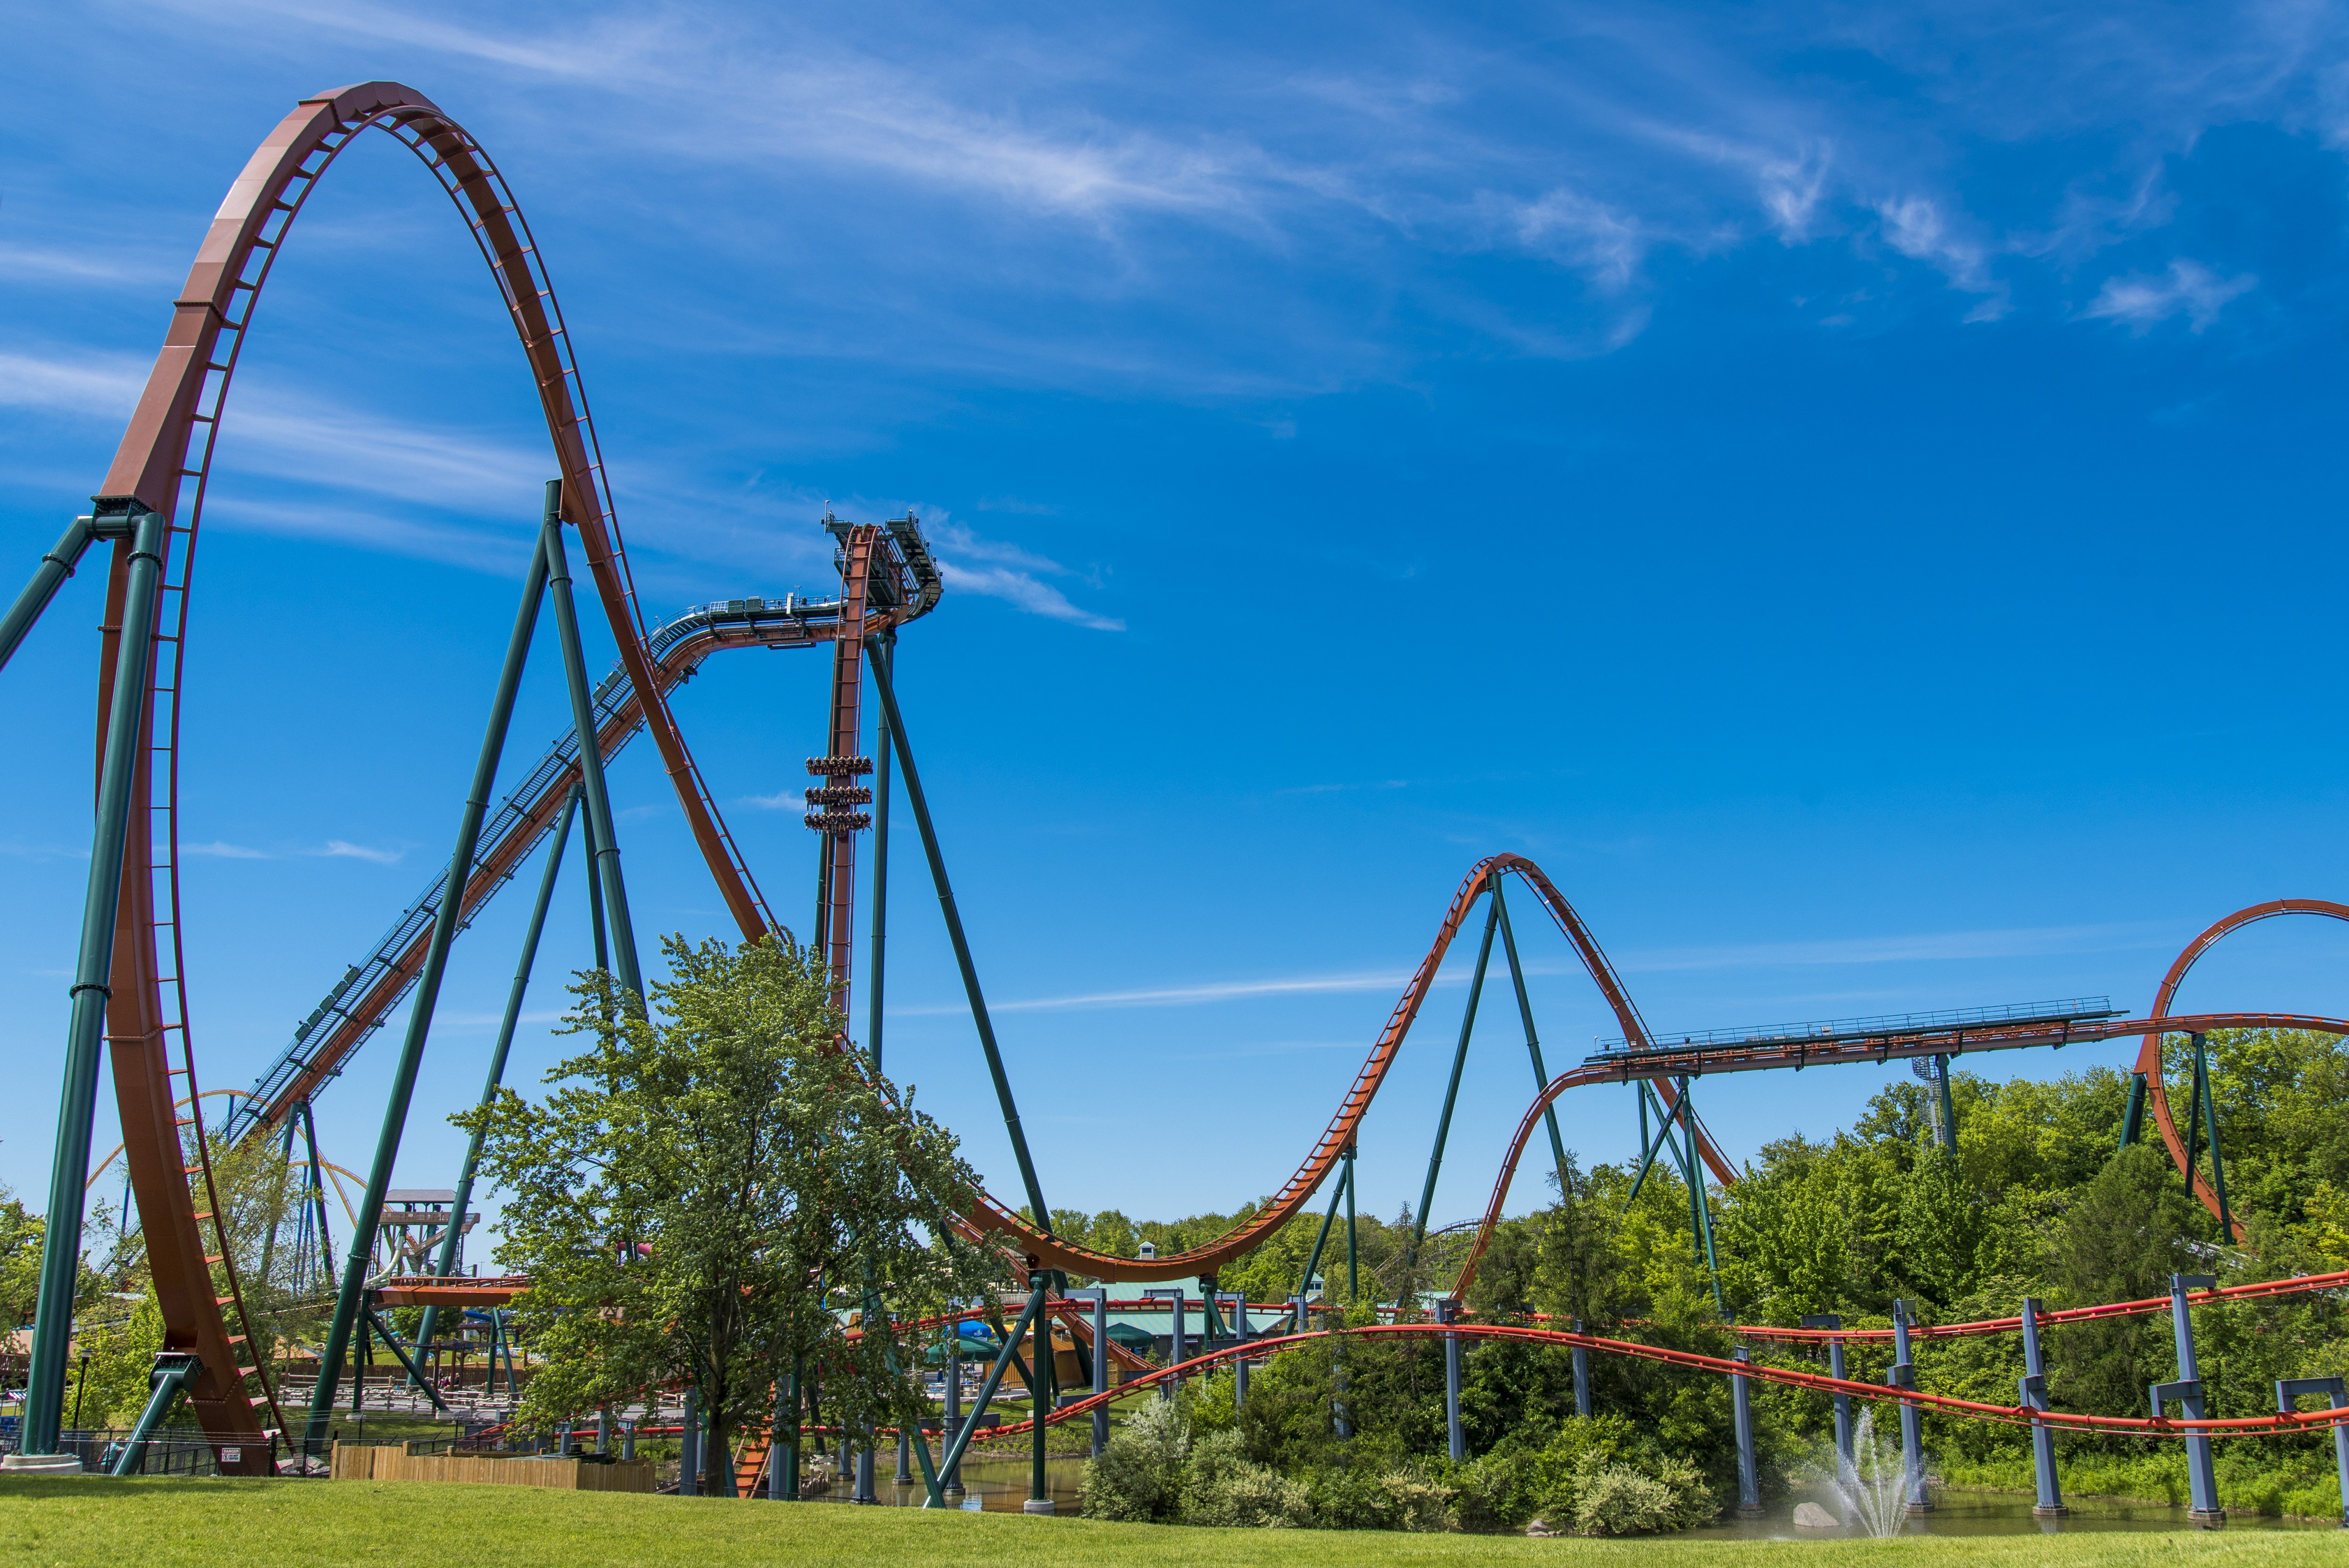 The Yukon Striker, one of the newest attractions at Canada's Wonderland, now set to reopen this Summer.